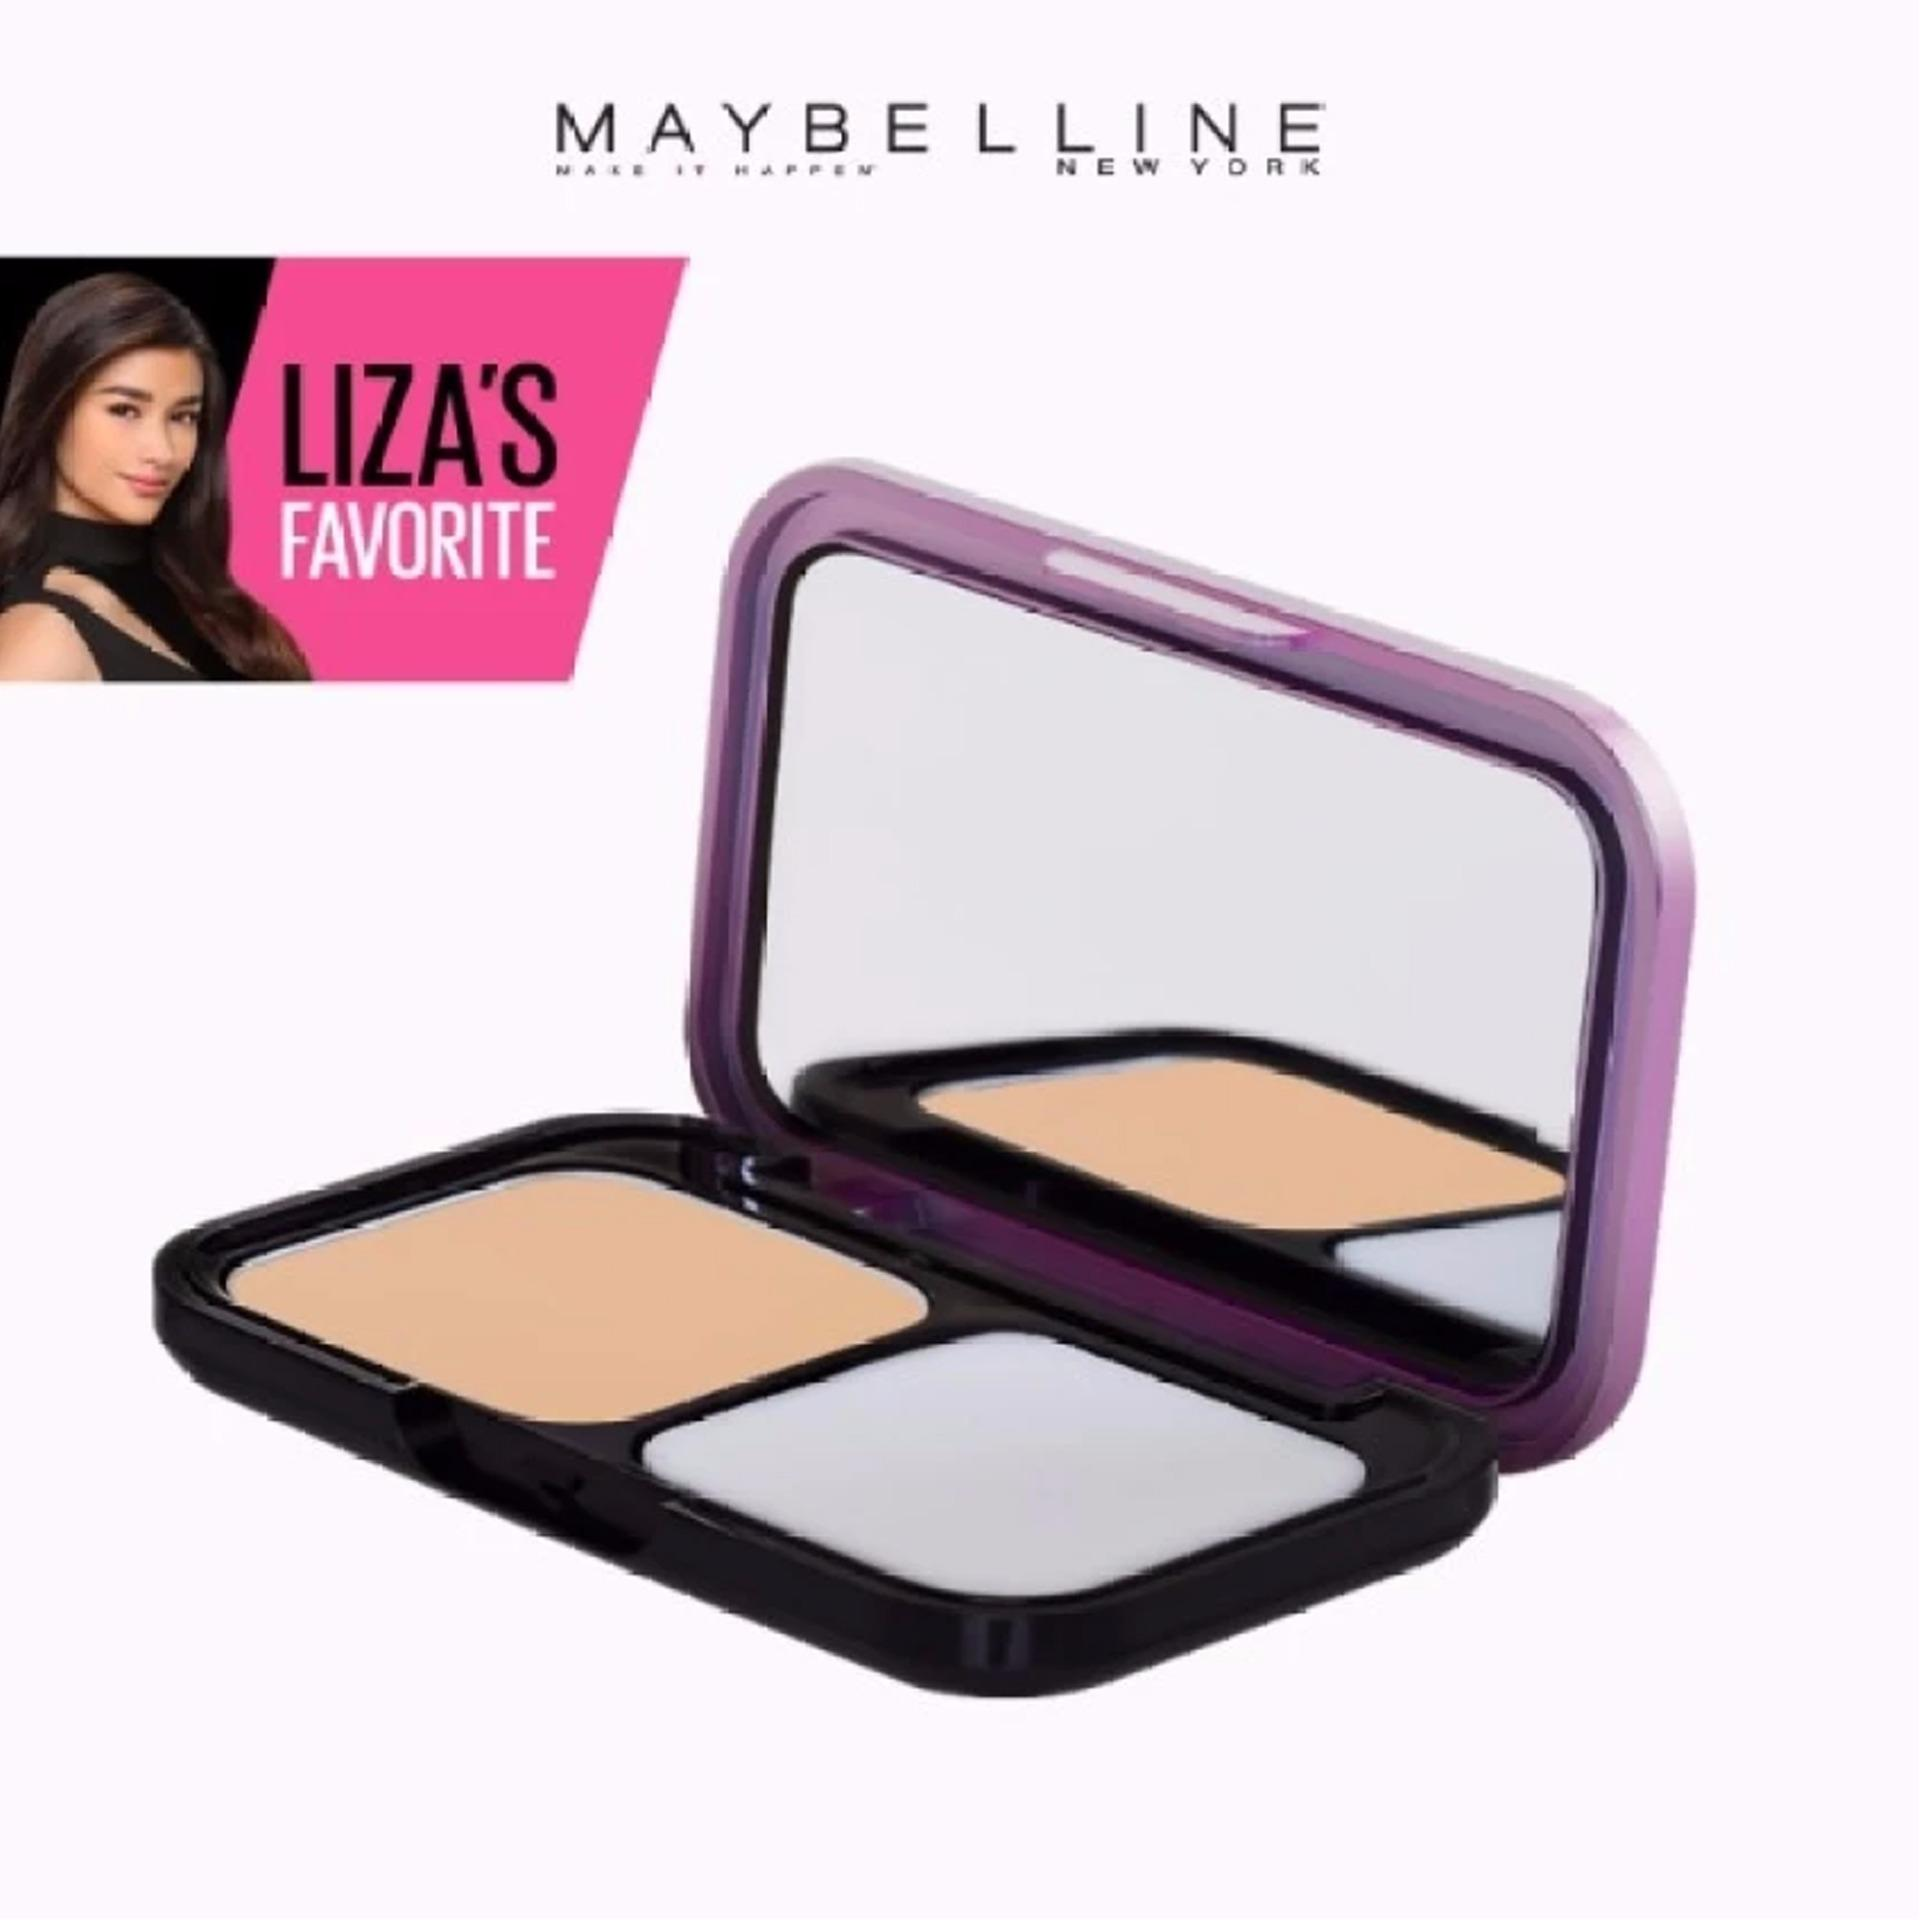 Clearsmooth All In One Powder Foundation – 03 Natural SPF32 PA+++ [Lizas Powder] by Maybelline Philippines